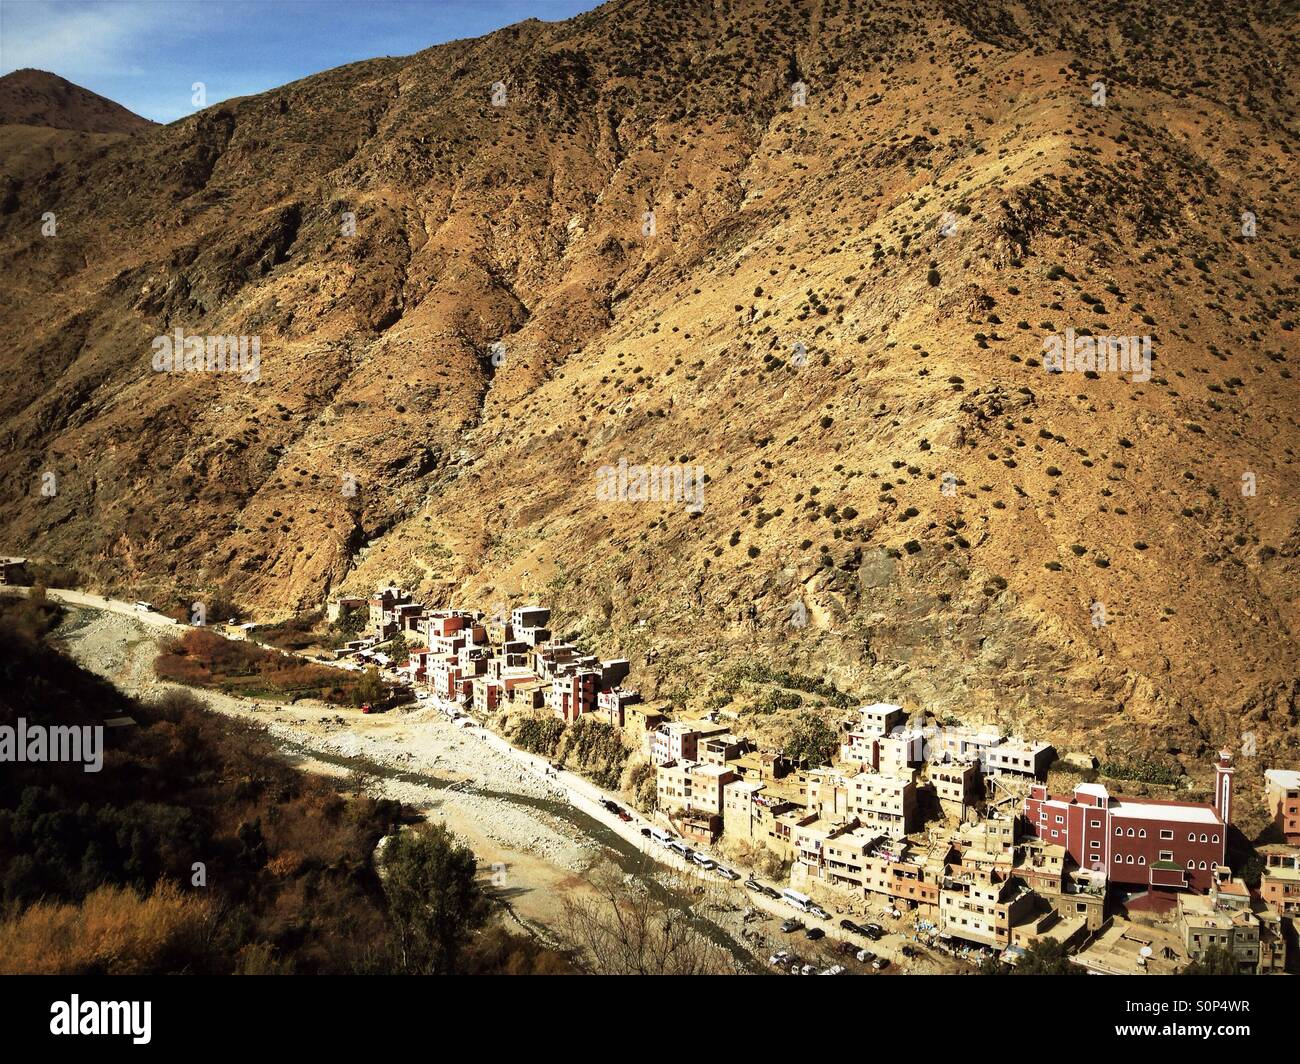 Berber village in Ourika valley, Morocco - Stock Image